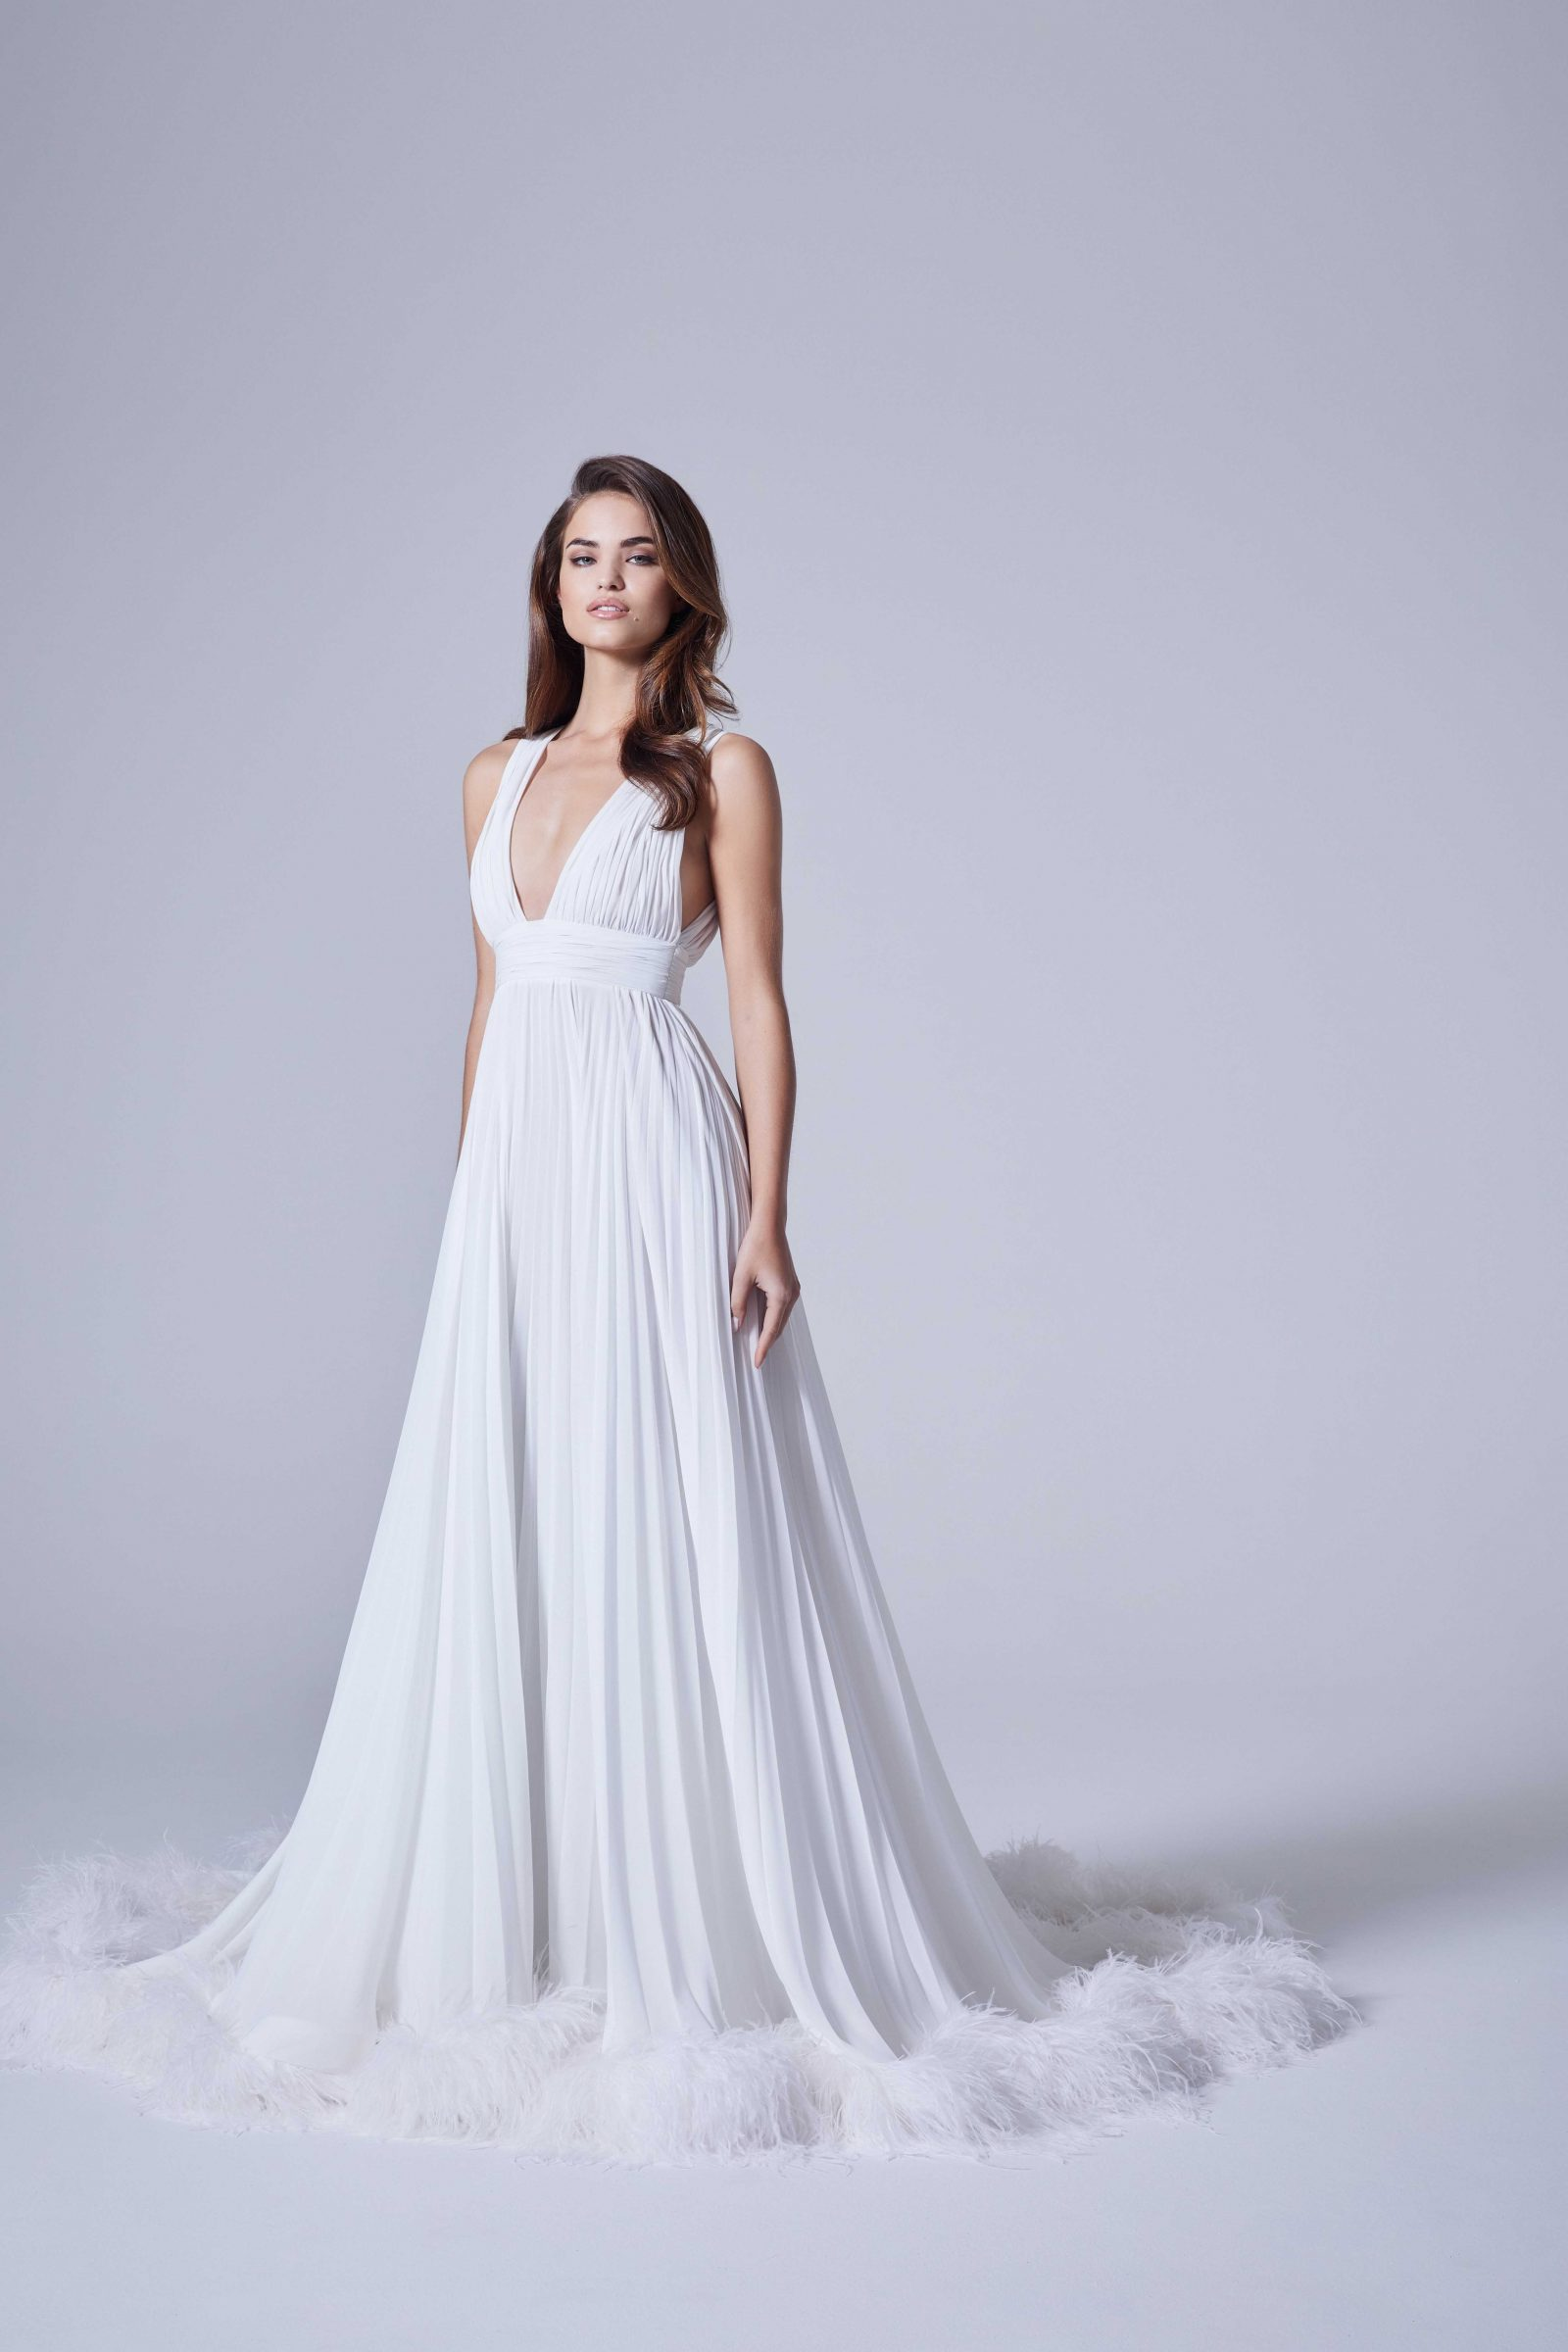 Deep V flowly bridal gown with feathers on bottom by Nicole + Felicia Couture